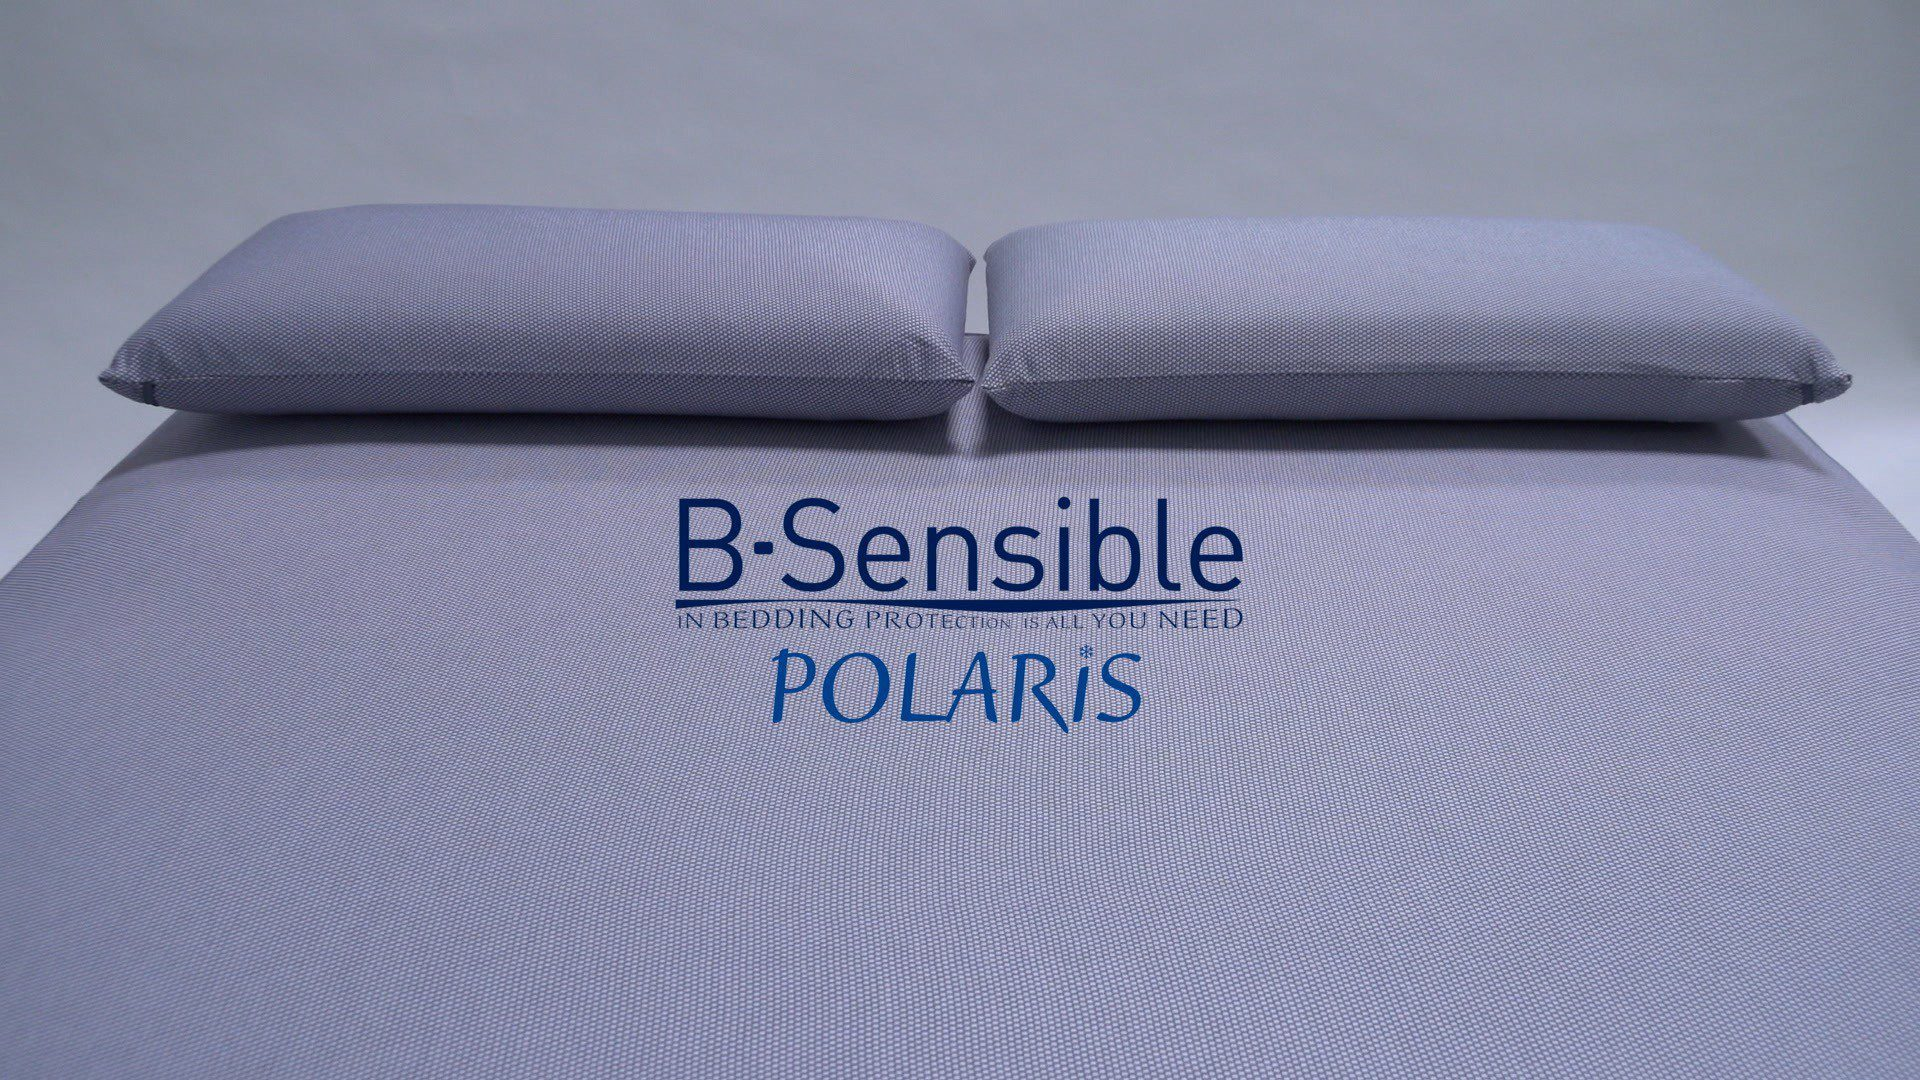 BSensible Polaris, désormais disponible en 4 couleurs